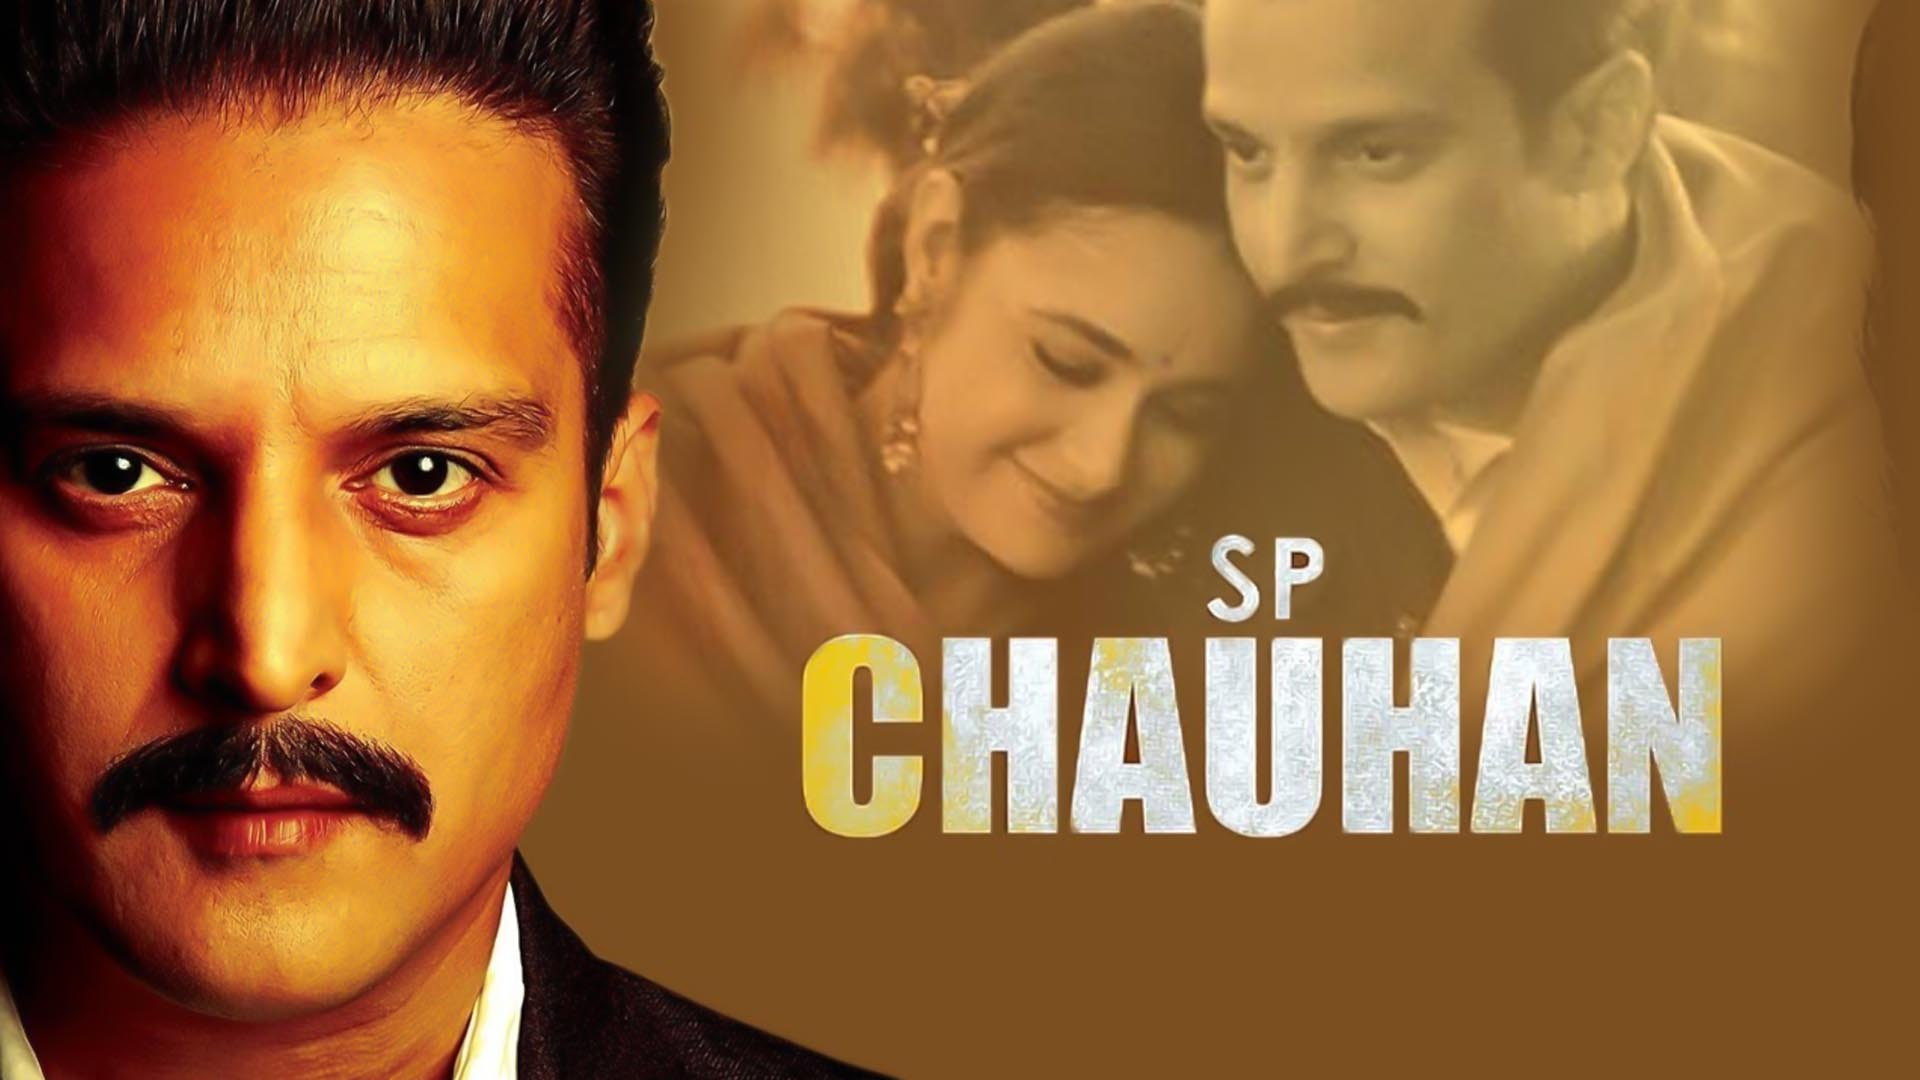 SP Chauhan: A Struggling Man